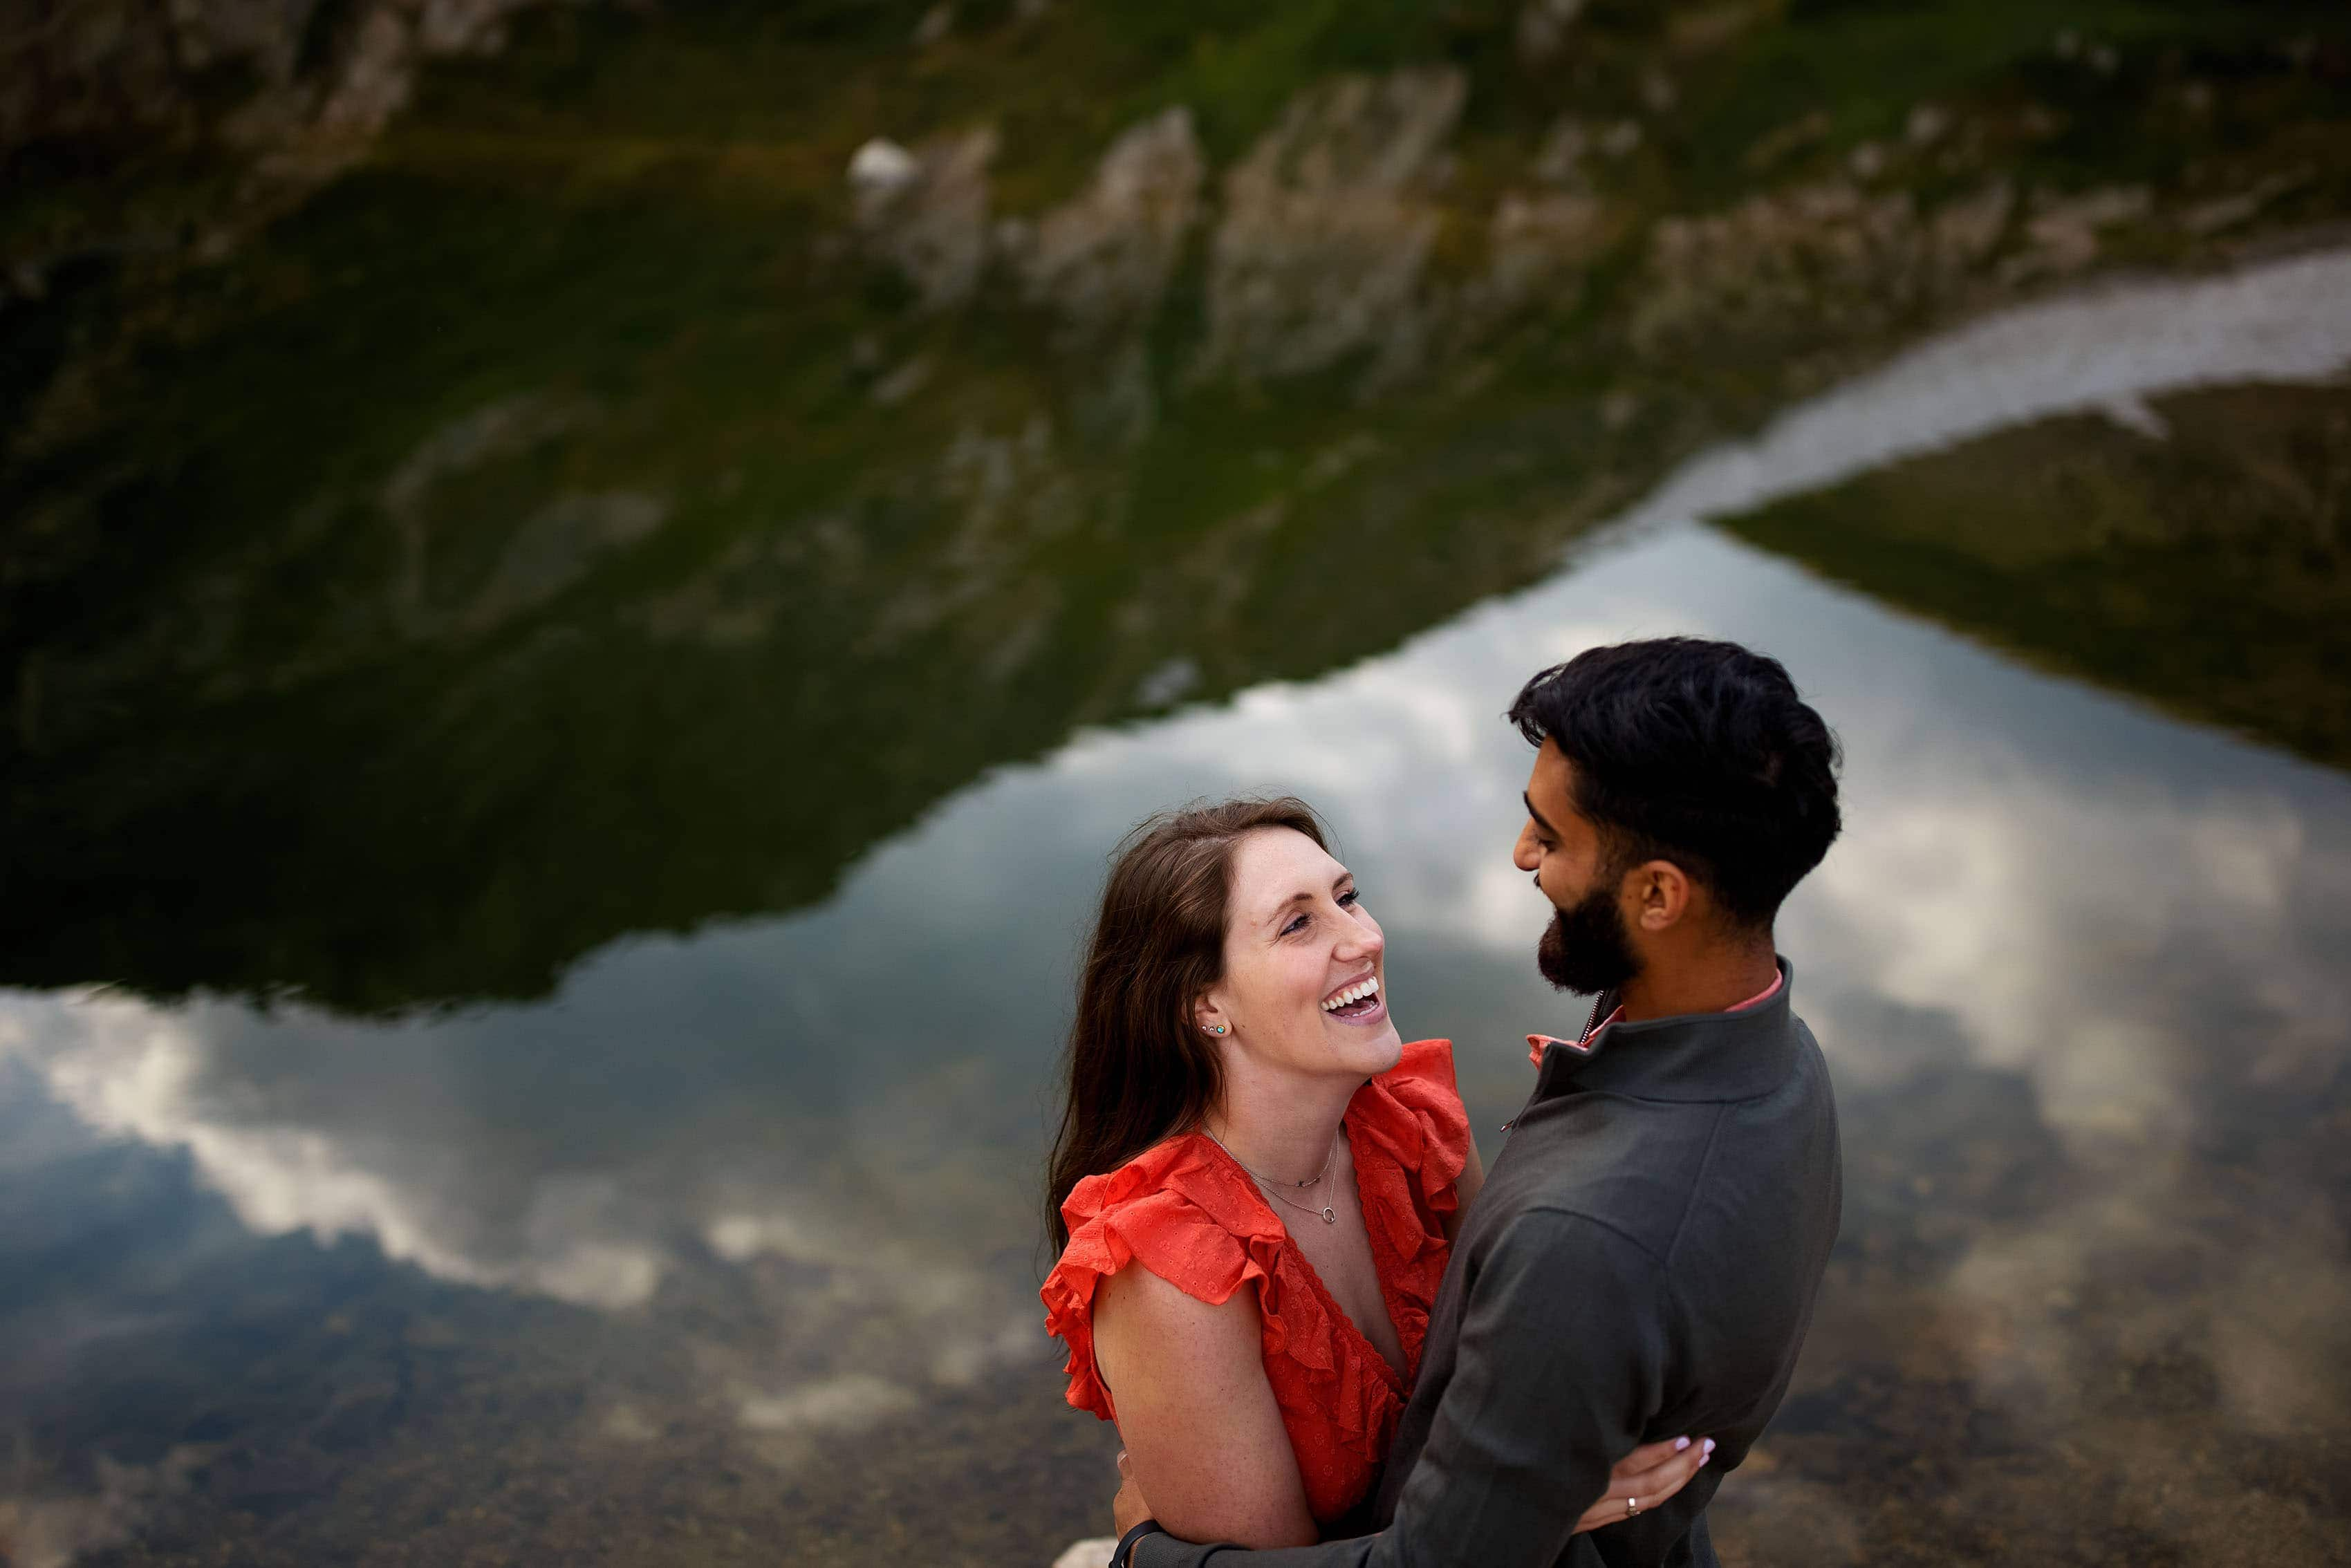 Kara and Moypa share a laugh during their engagement session at St. Mary's Glacier